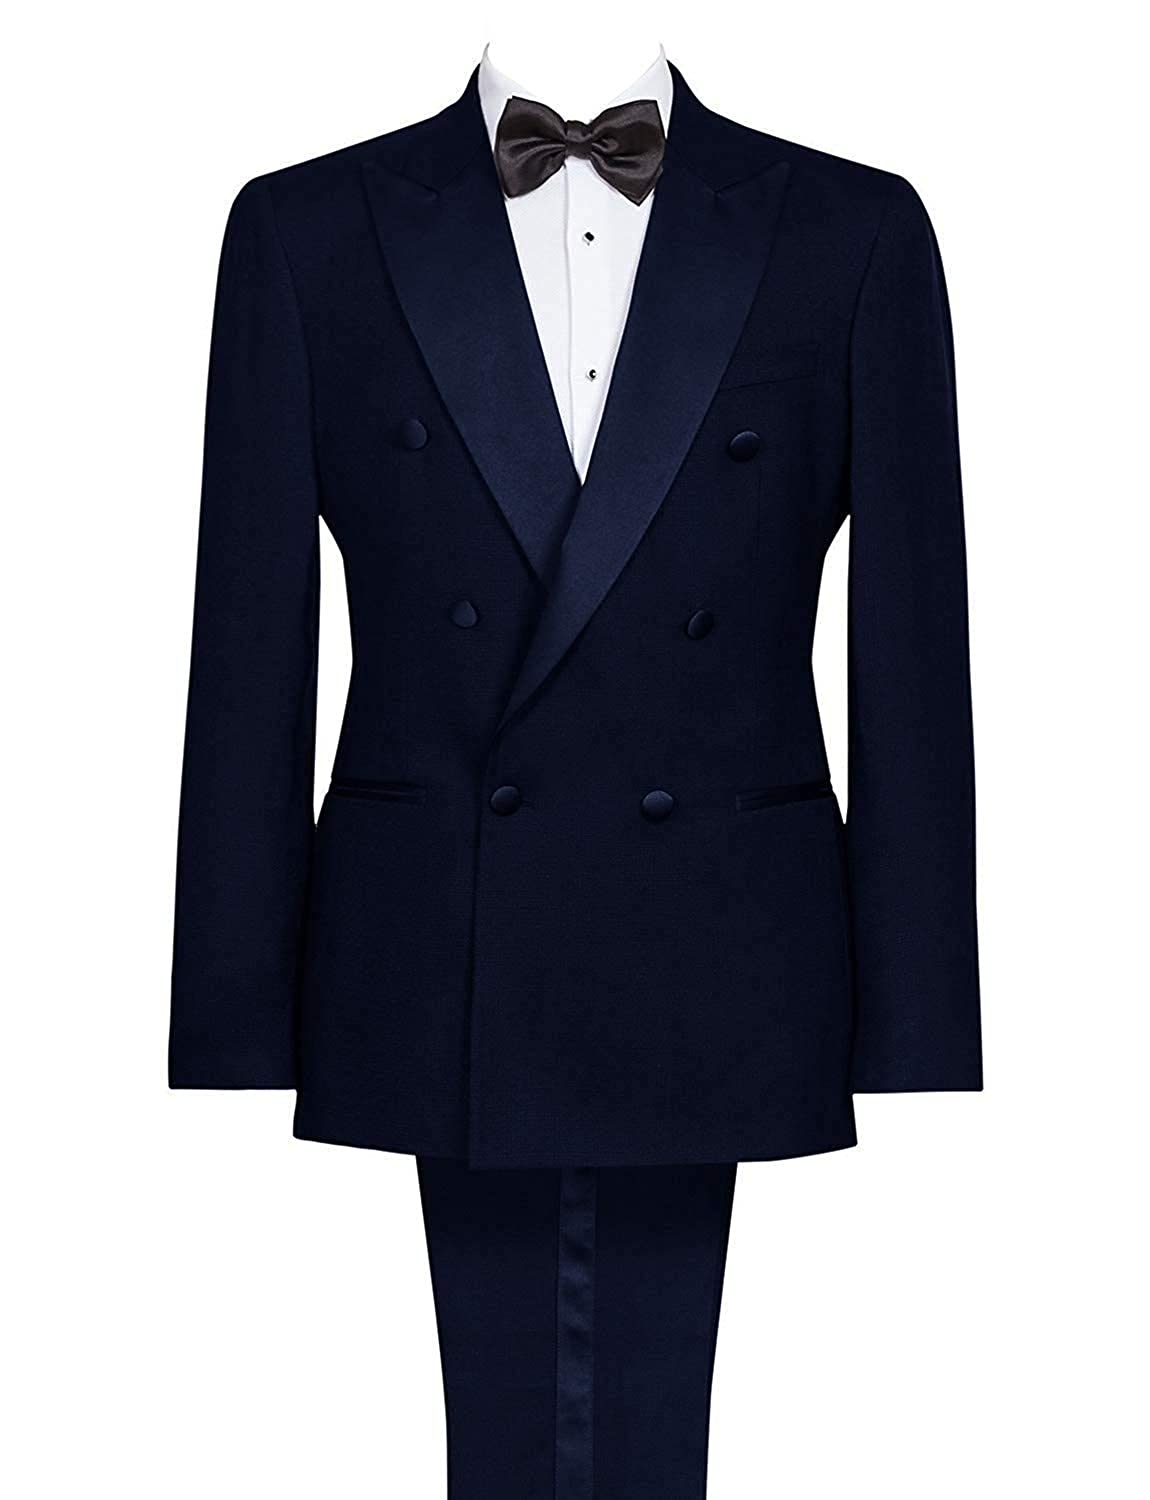 Wemaliyzd Mens 2 Pieces Regular Fit Tux Suit Double Breasted Blazer Pants